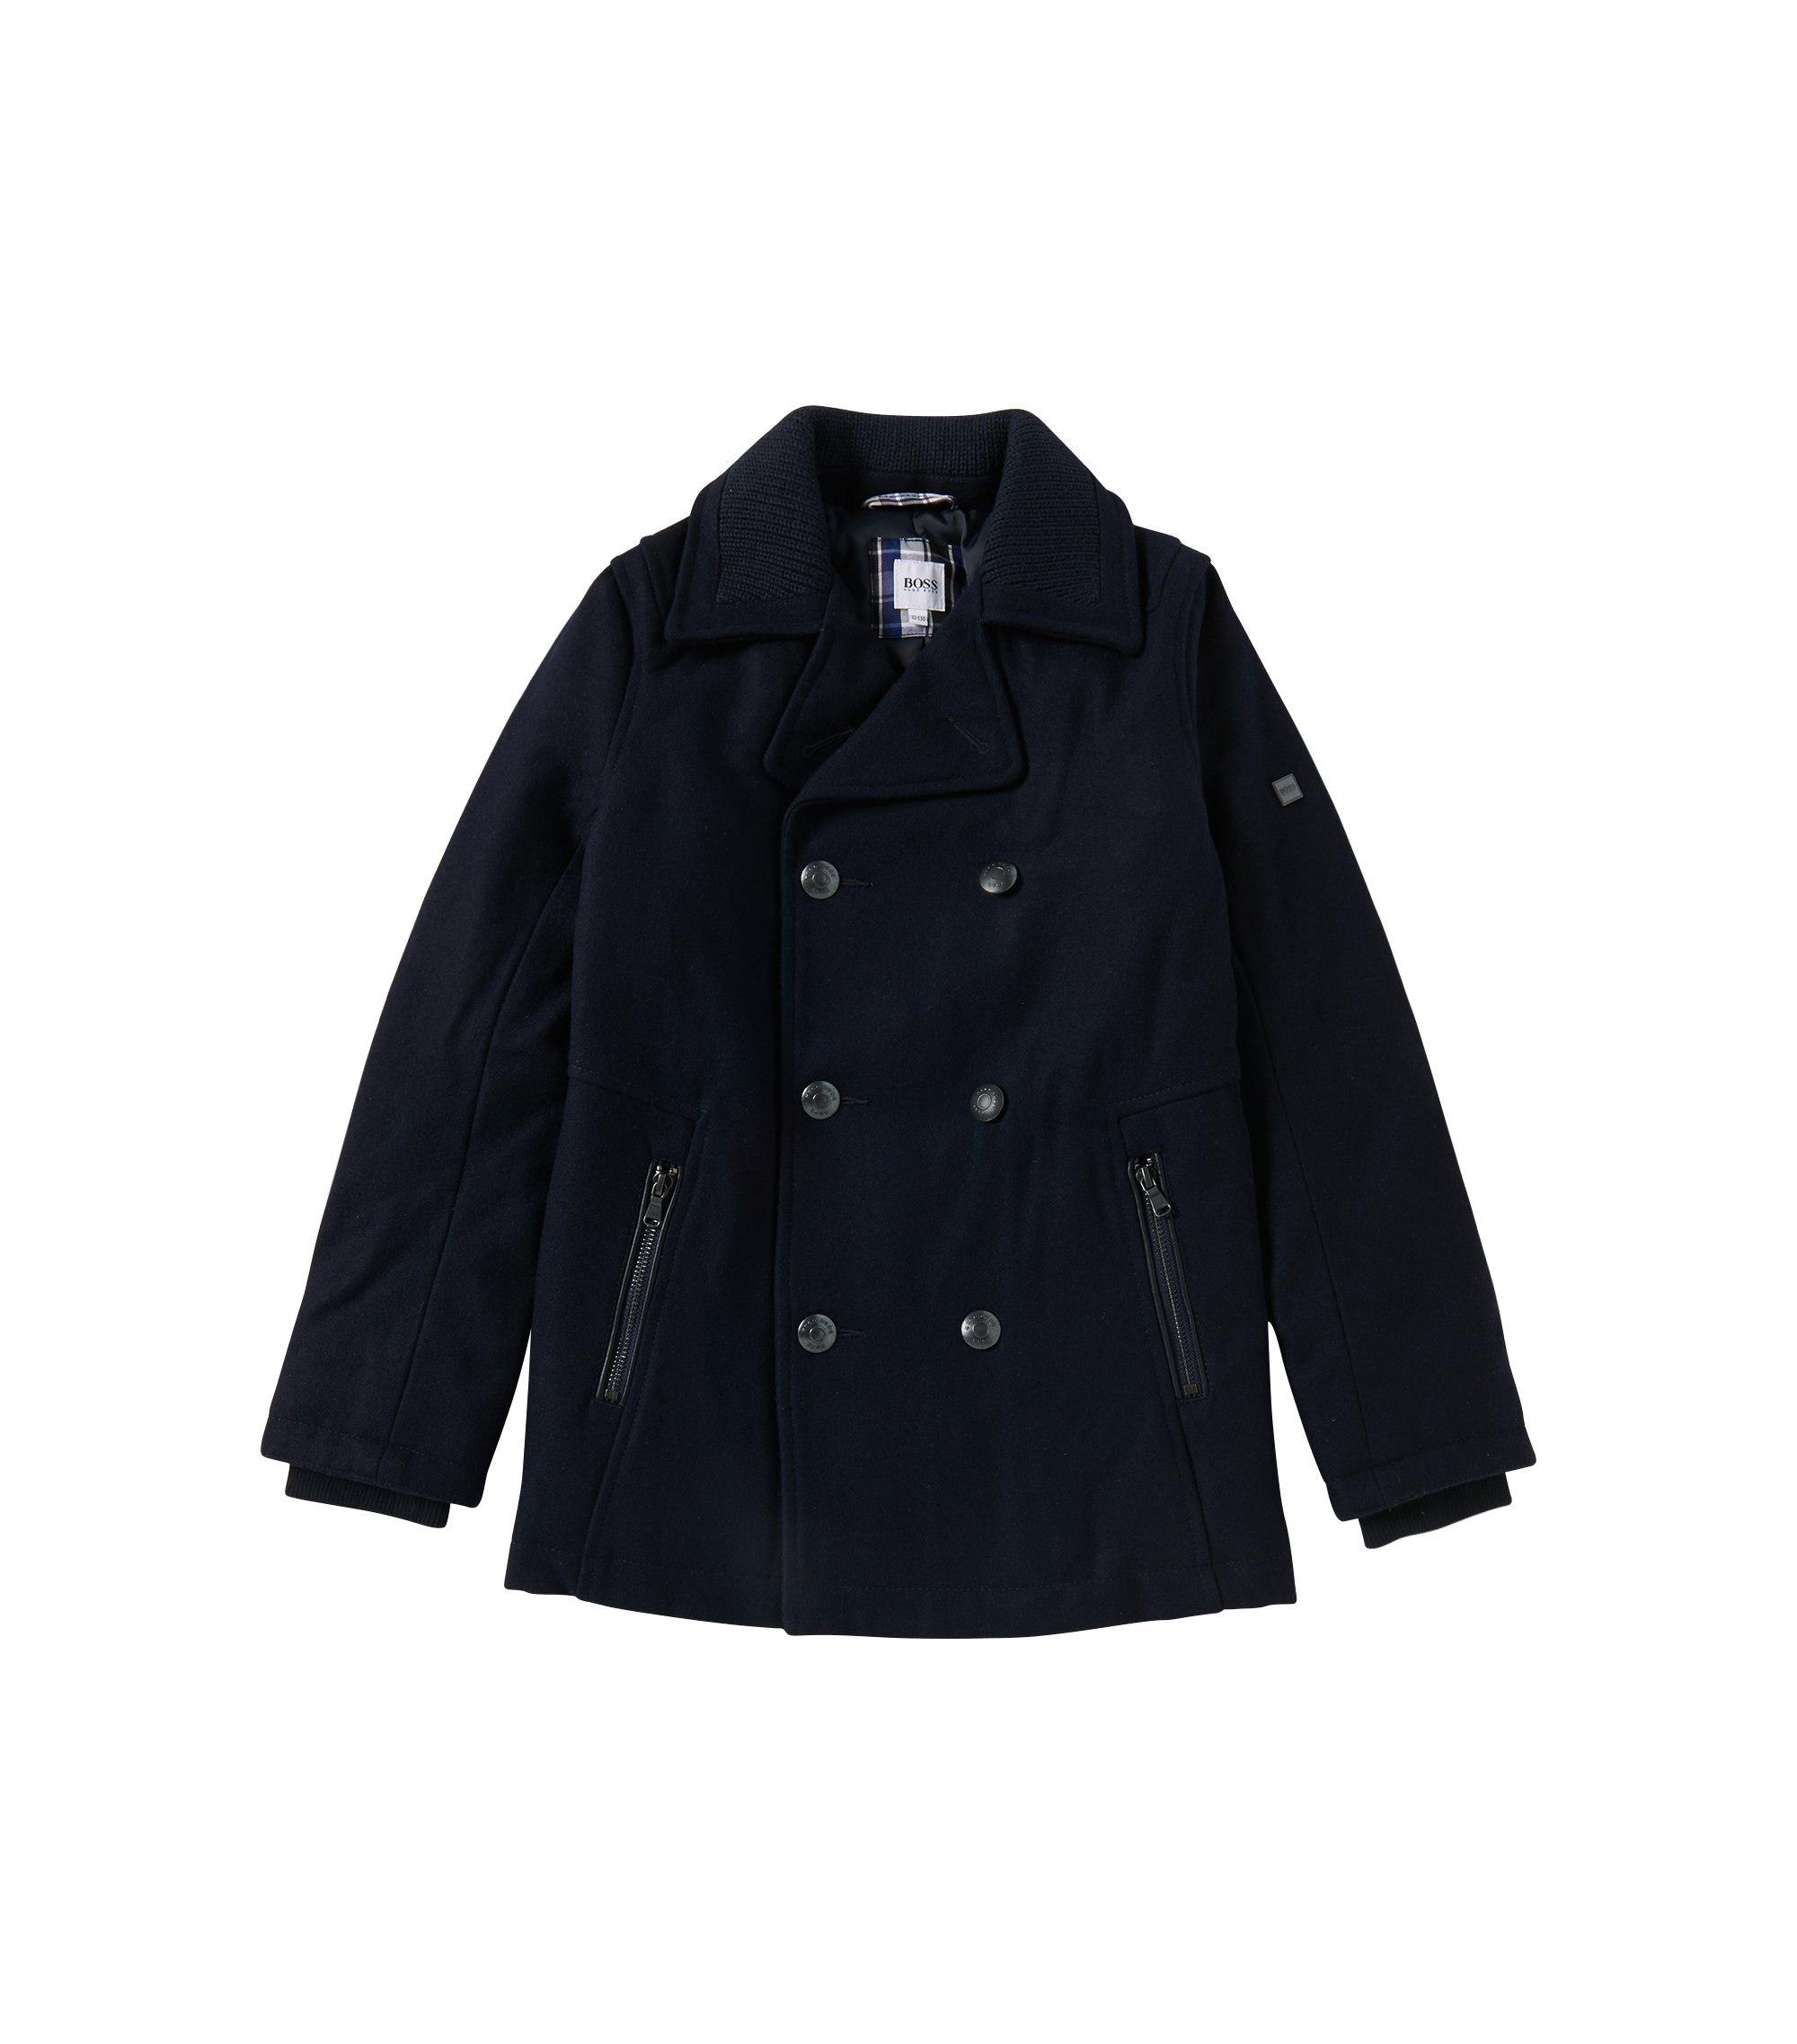 'J26257' | Boys Wool Pea Coat, Dark Blue